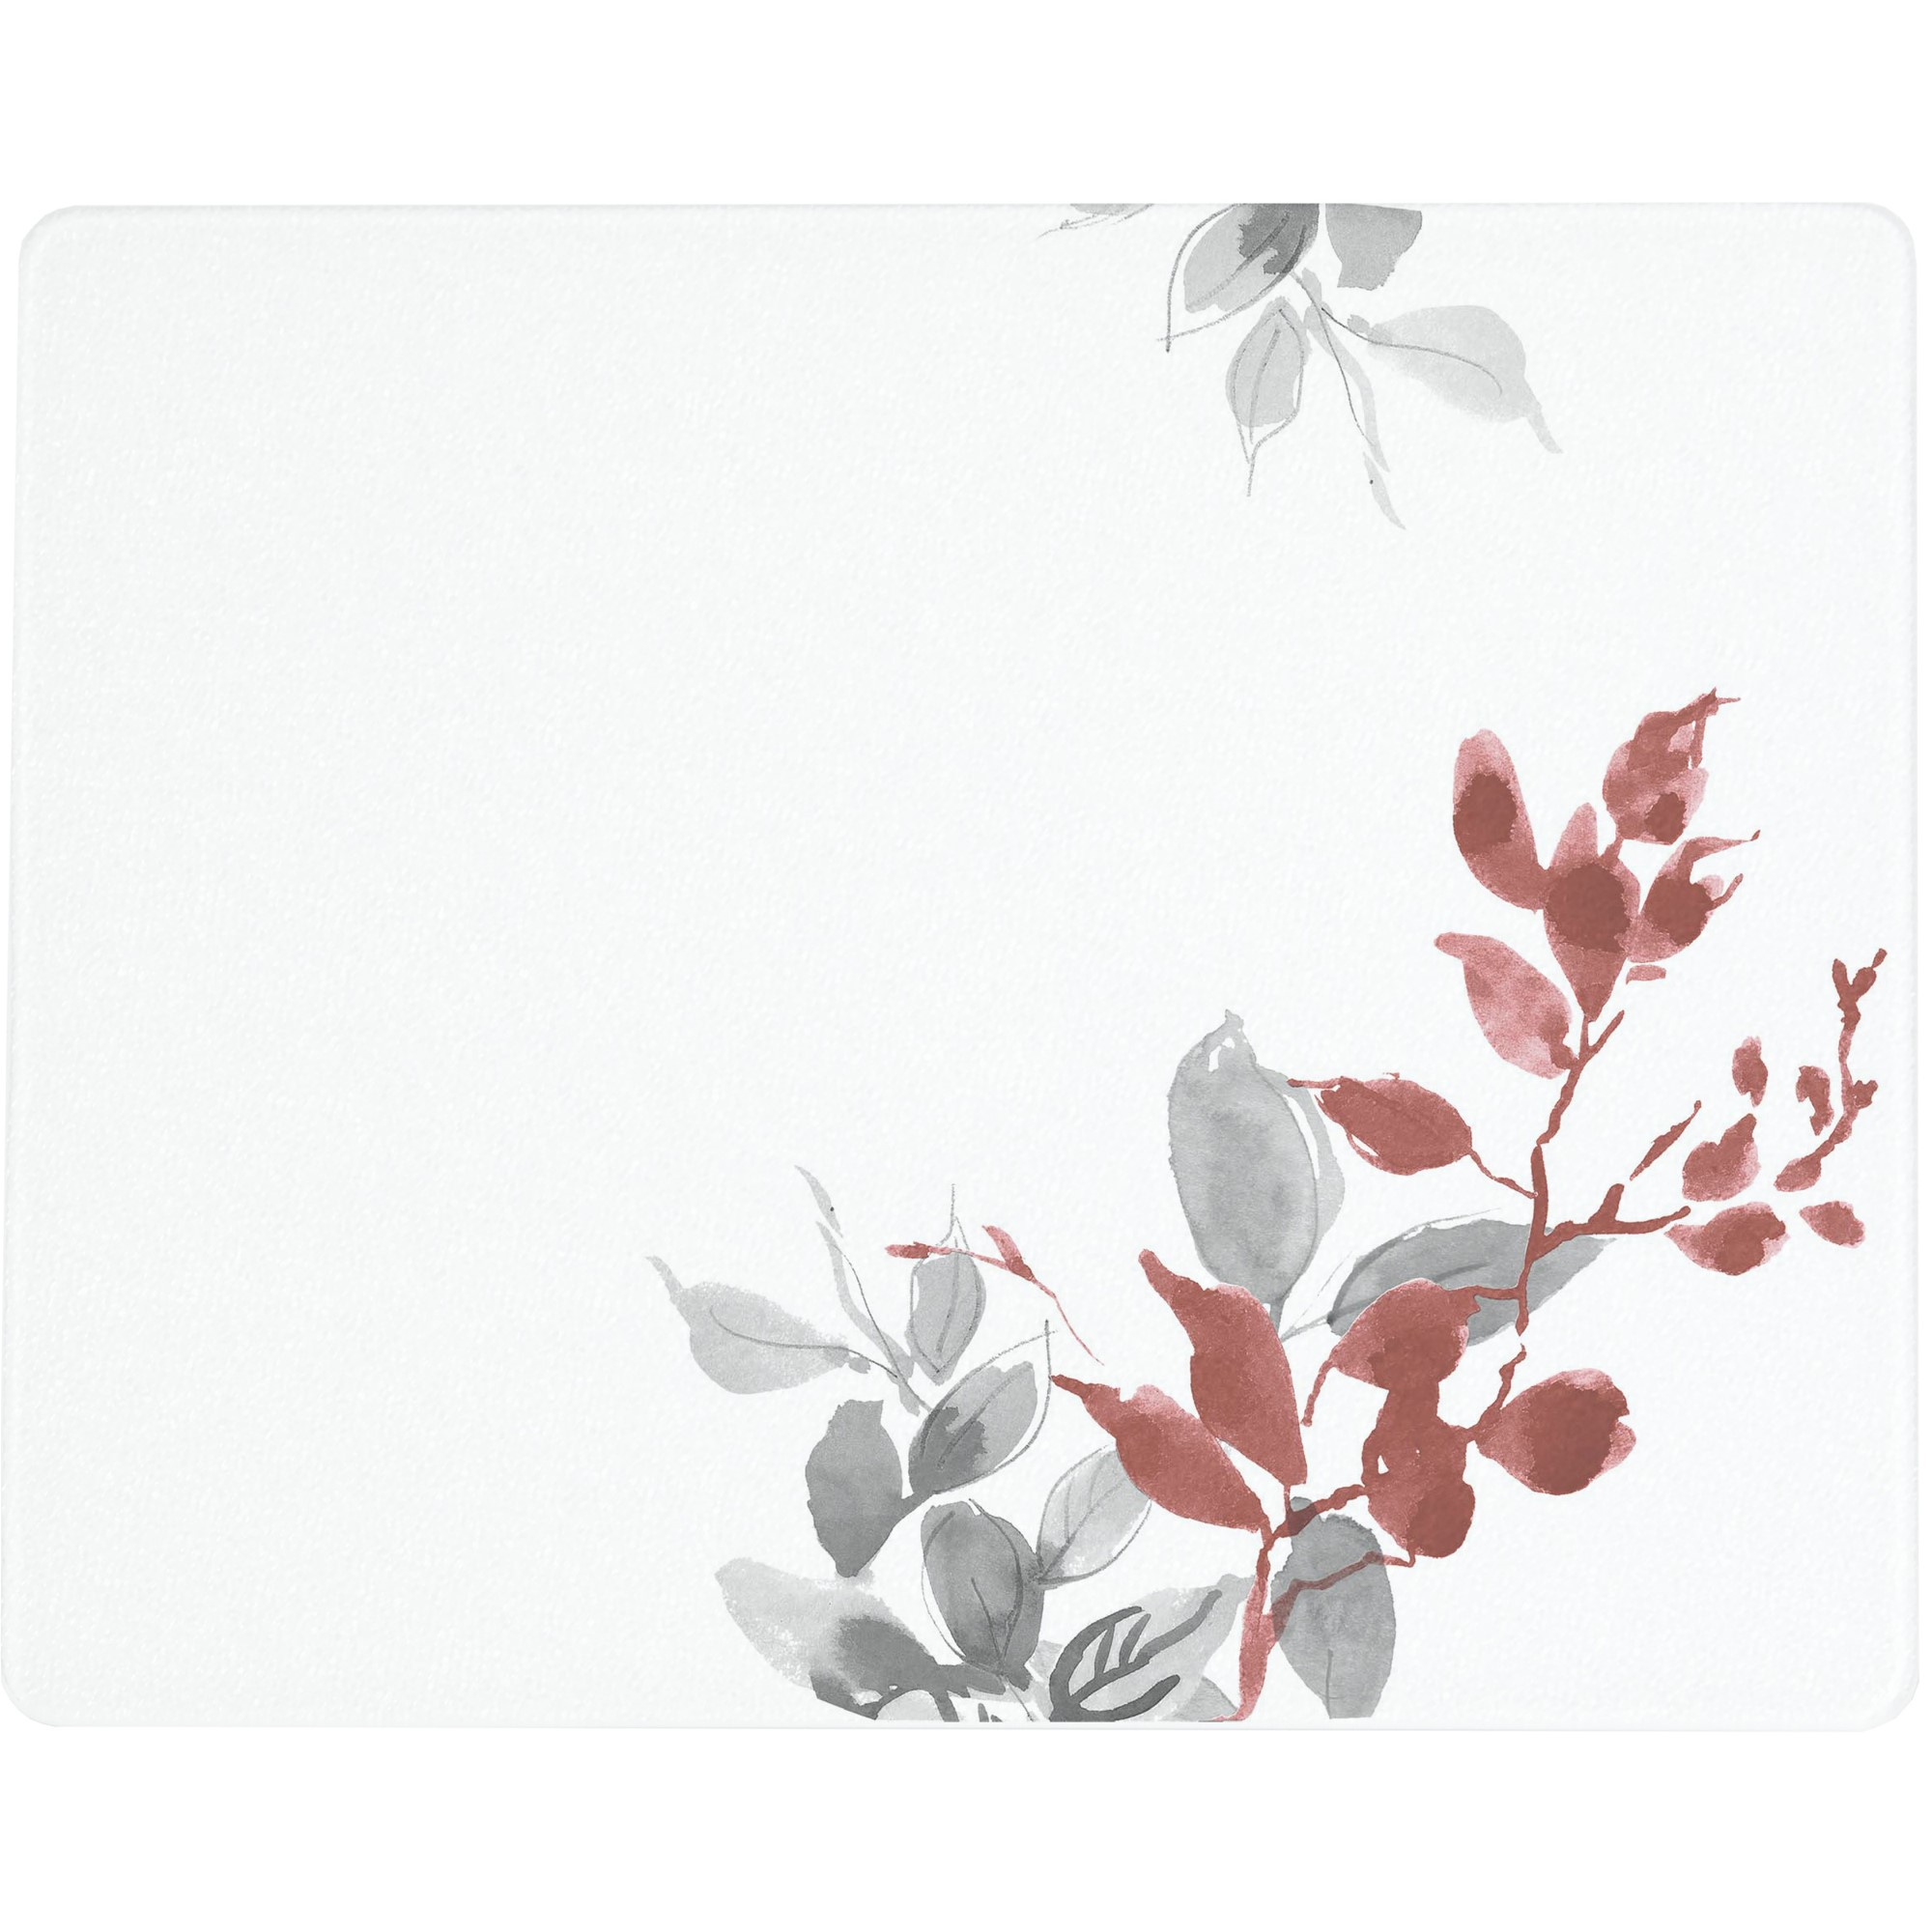 Corelle Kyoto Leaves 20 X 16 inch Counter Saver Tempered Glass Cutting Board, 92016KYOH